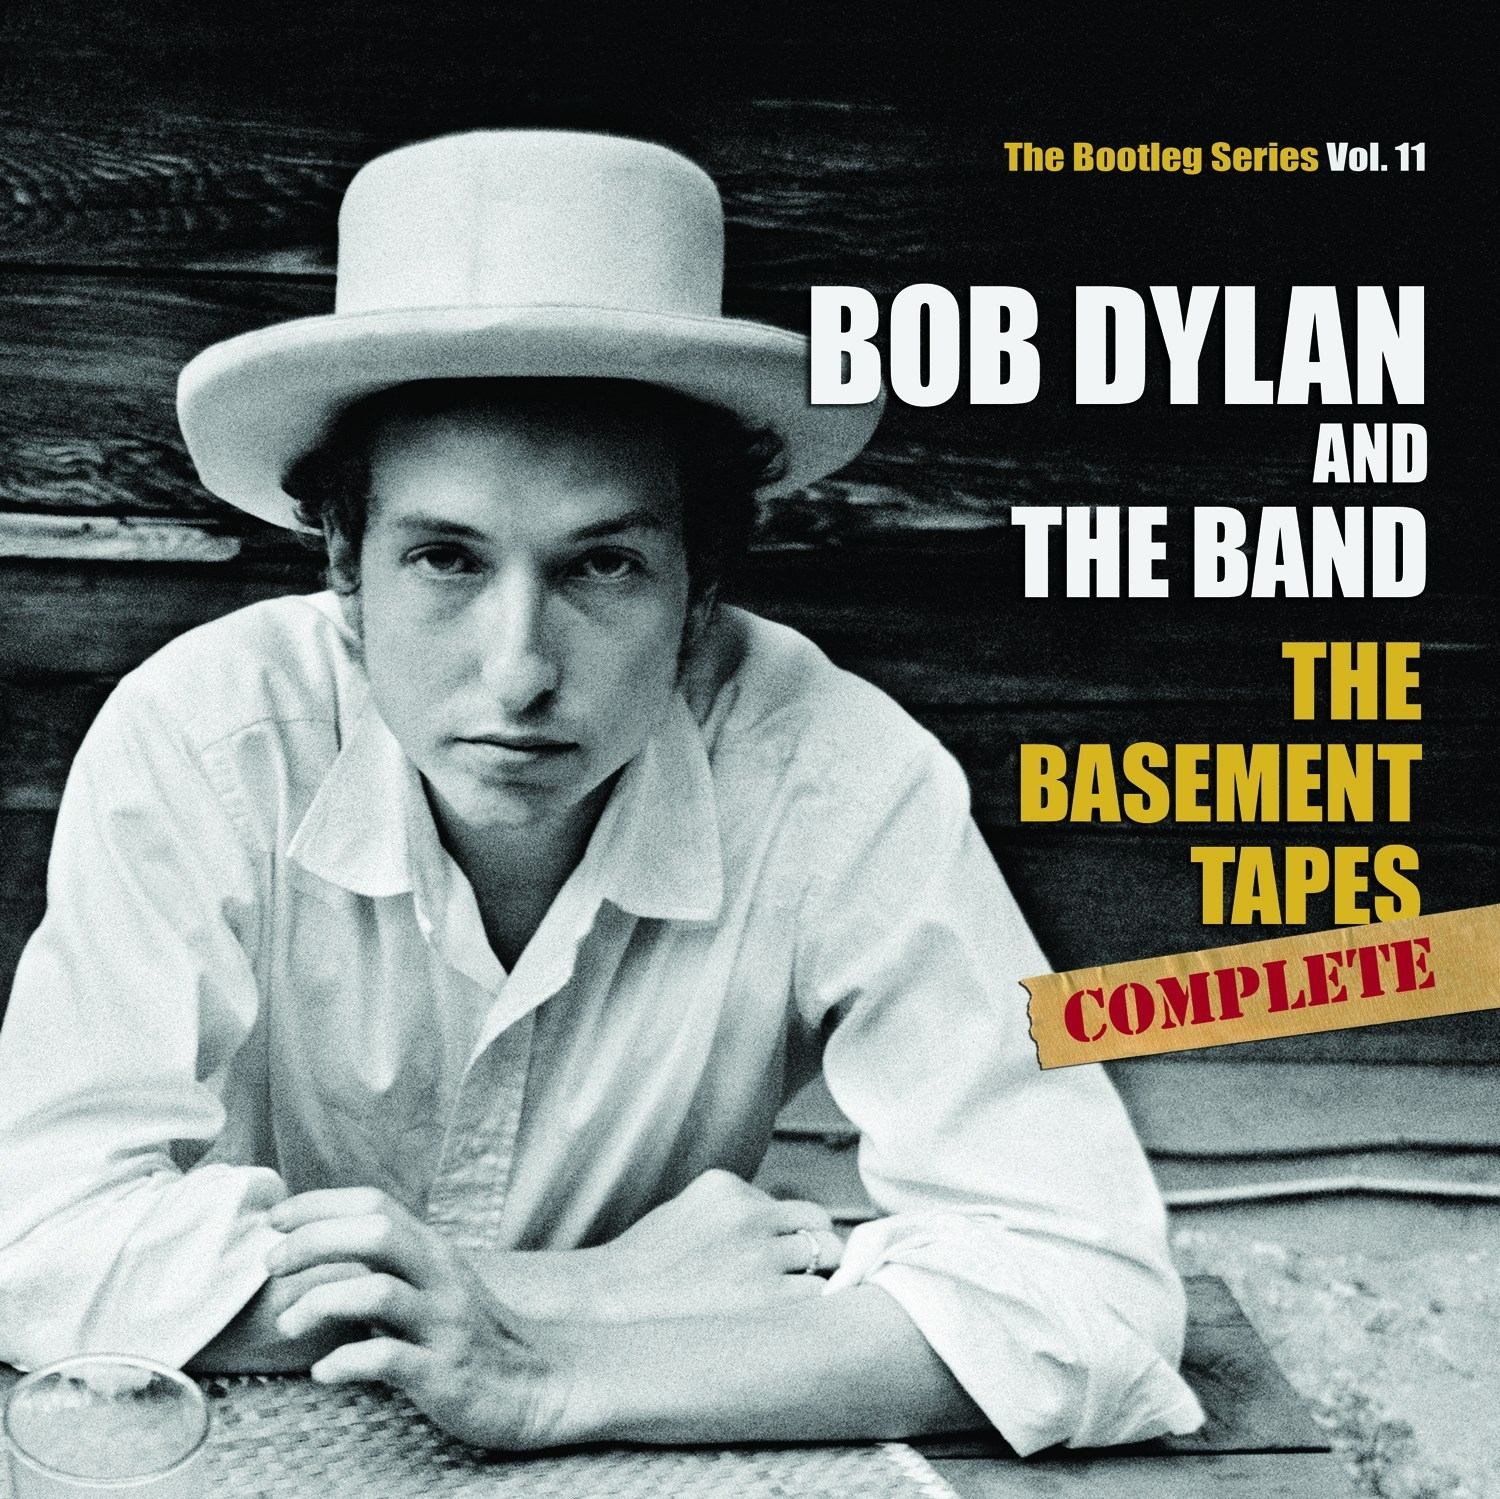 Bob Dylan's The Basement Tapes Complete: The Bootleg Series Vol. 11 Set For 11/4